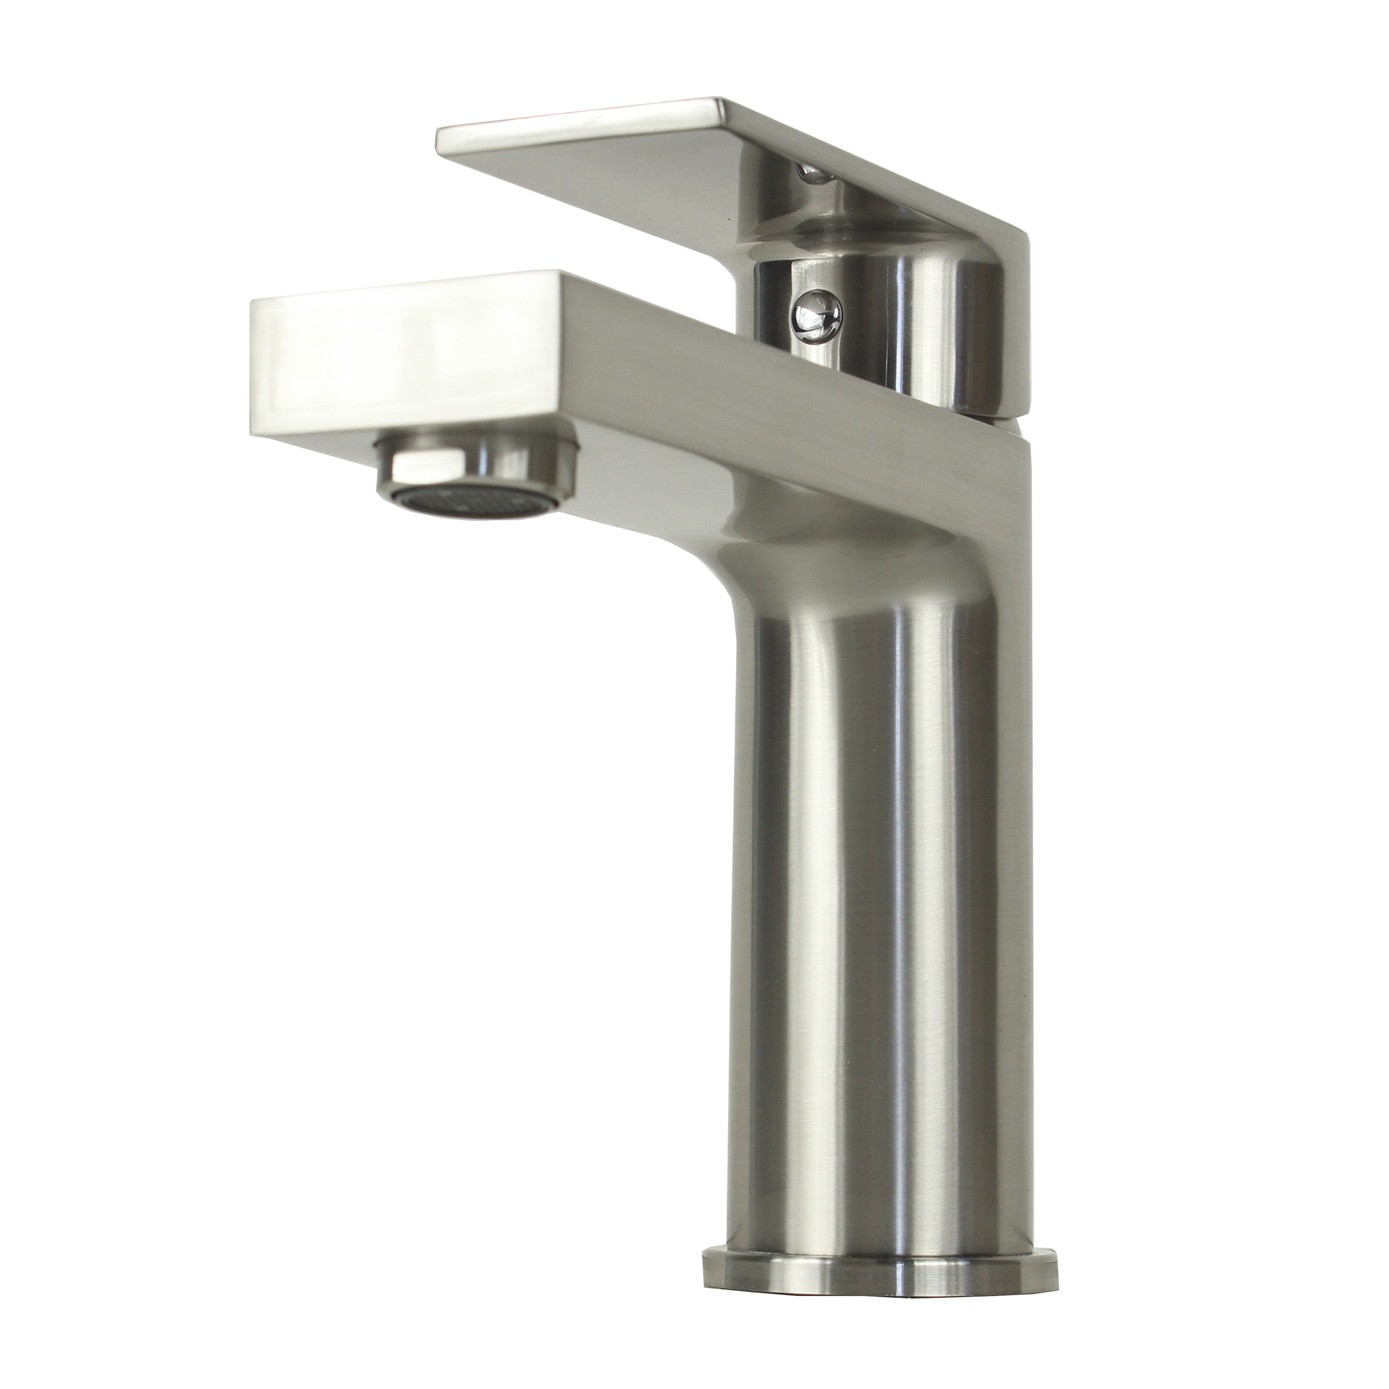 Single Hole Vessel Sink Faucet : ... > Anna Brushed Nickel Handle Bathroom Vessel Sink Single Hole Faucet